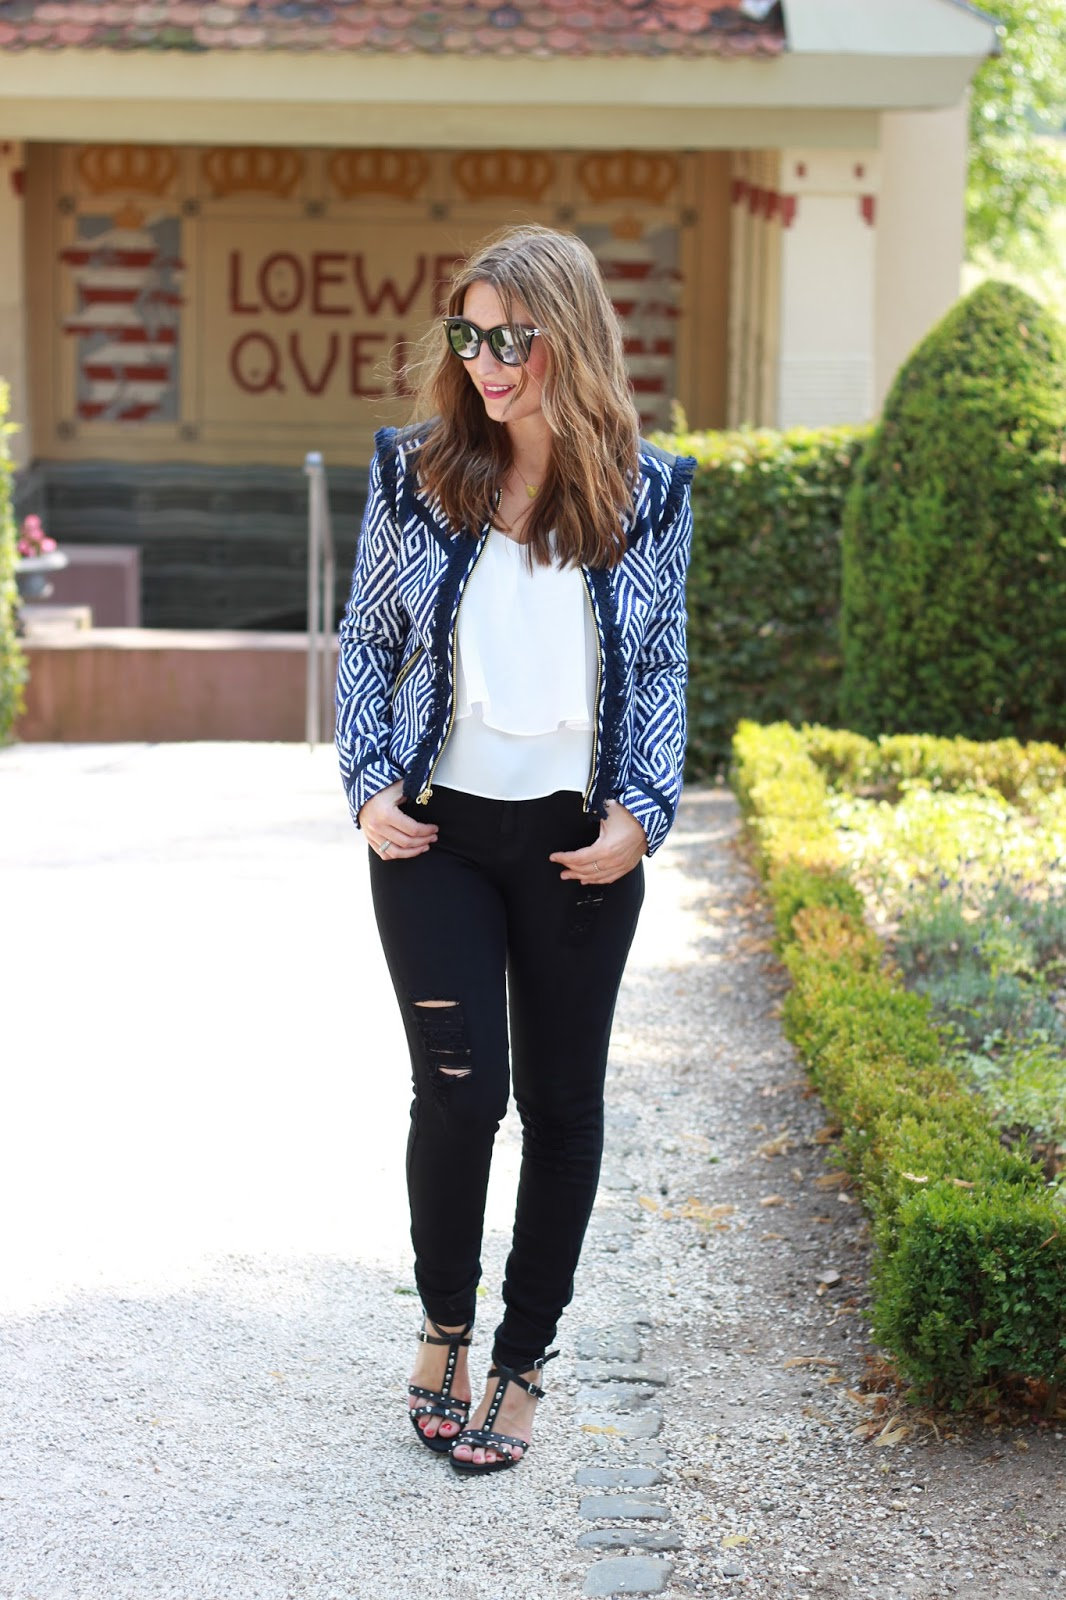 Schwarze Ripped Jeans - Blogger - Fashionblogger aus Detschland - Deutsche Fashionblogger - Juicy Couture- Juicy Couture blazer